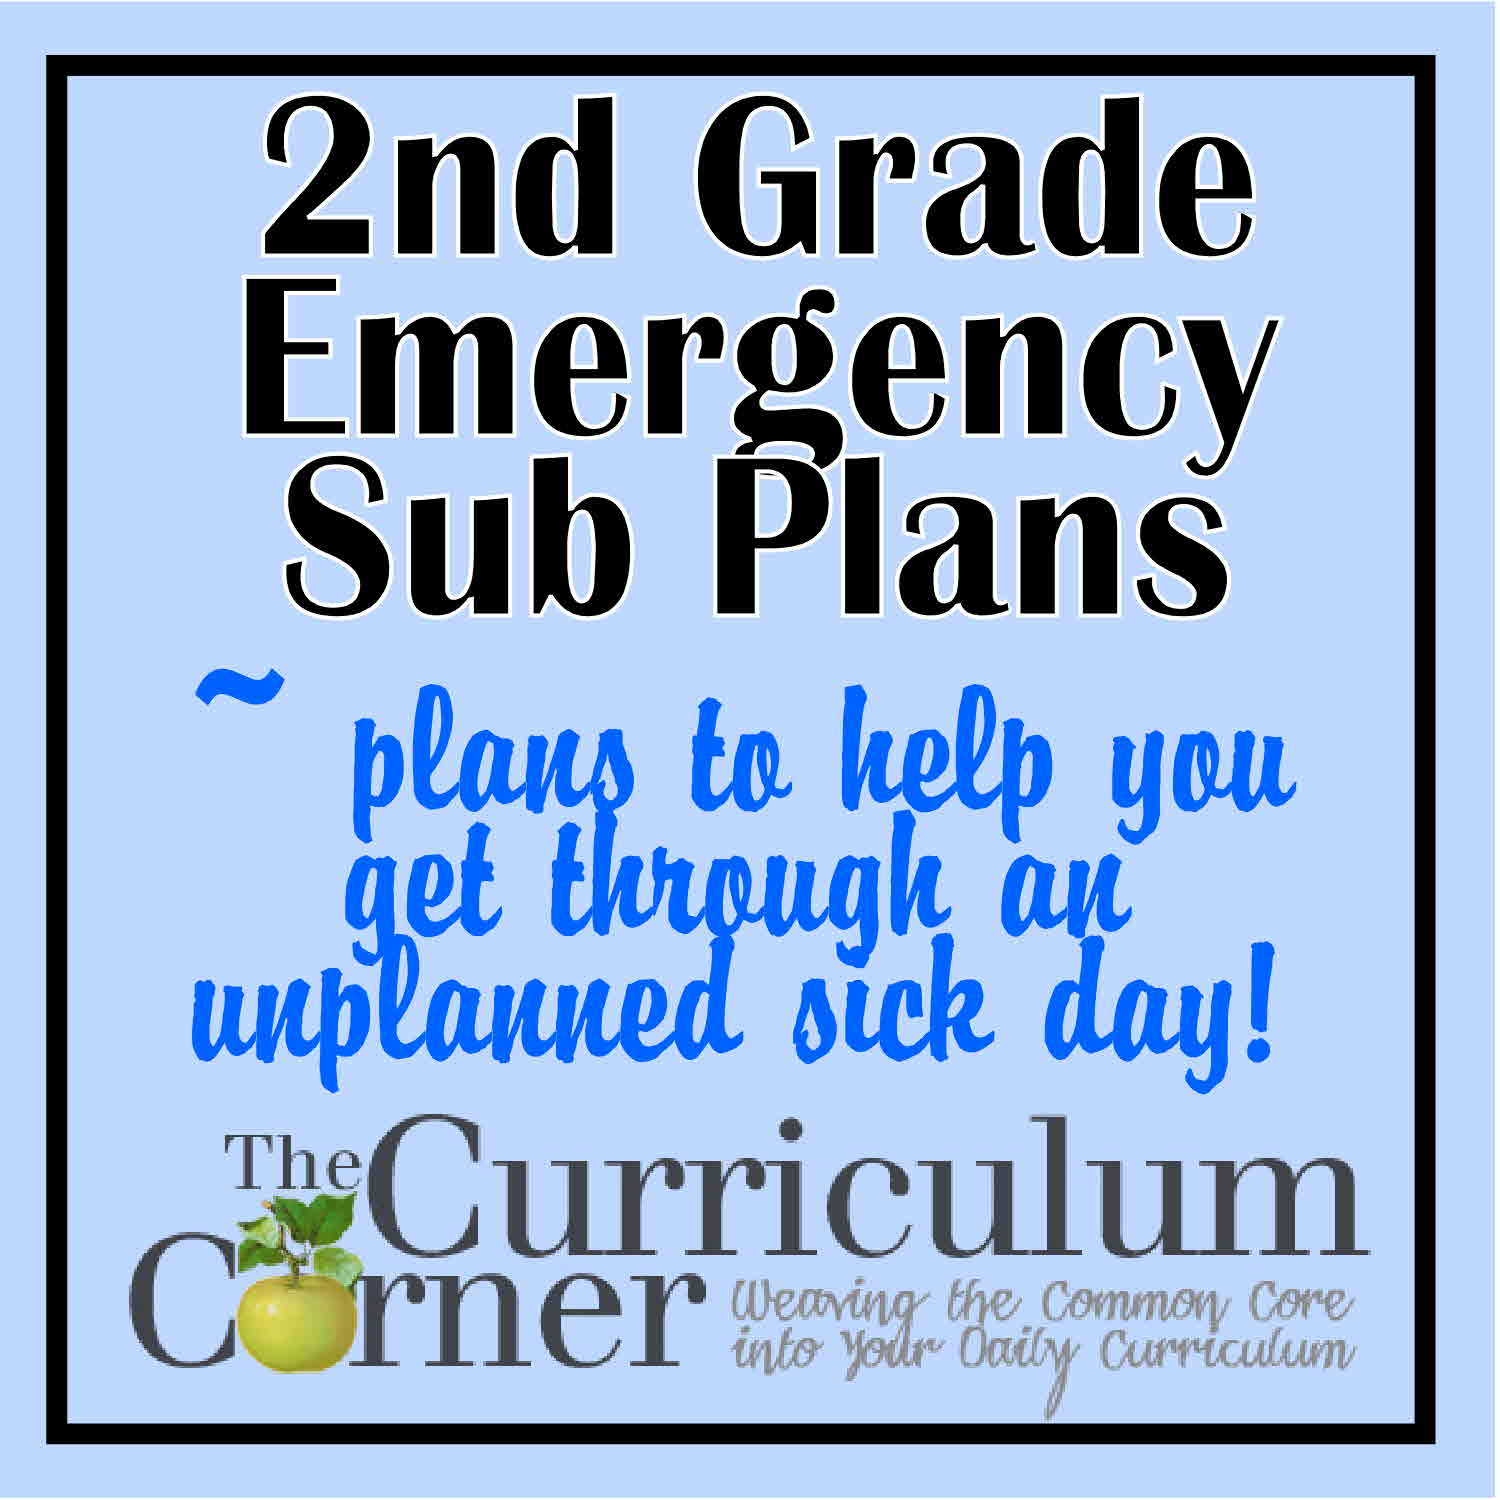 Worksheets Second Grade Social Studies Worksheets 2nd grade emergency sub plans the curriculum corner 123 plans